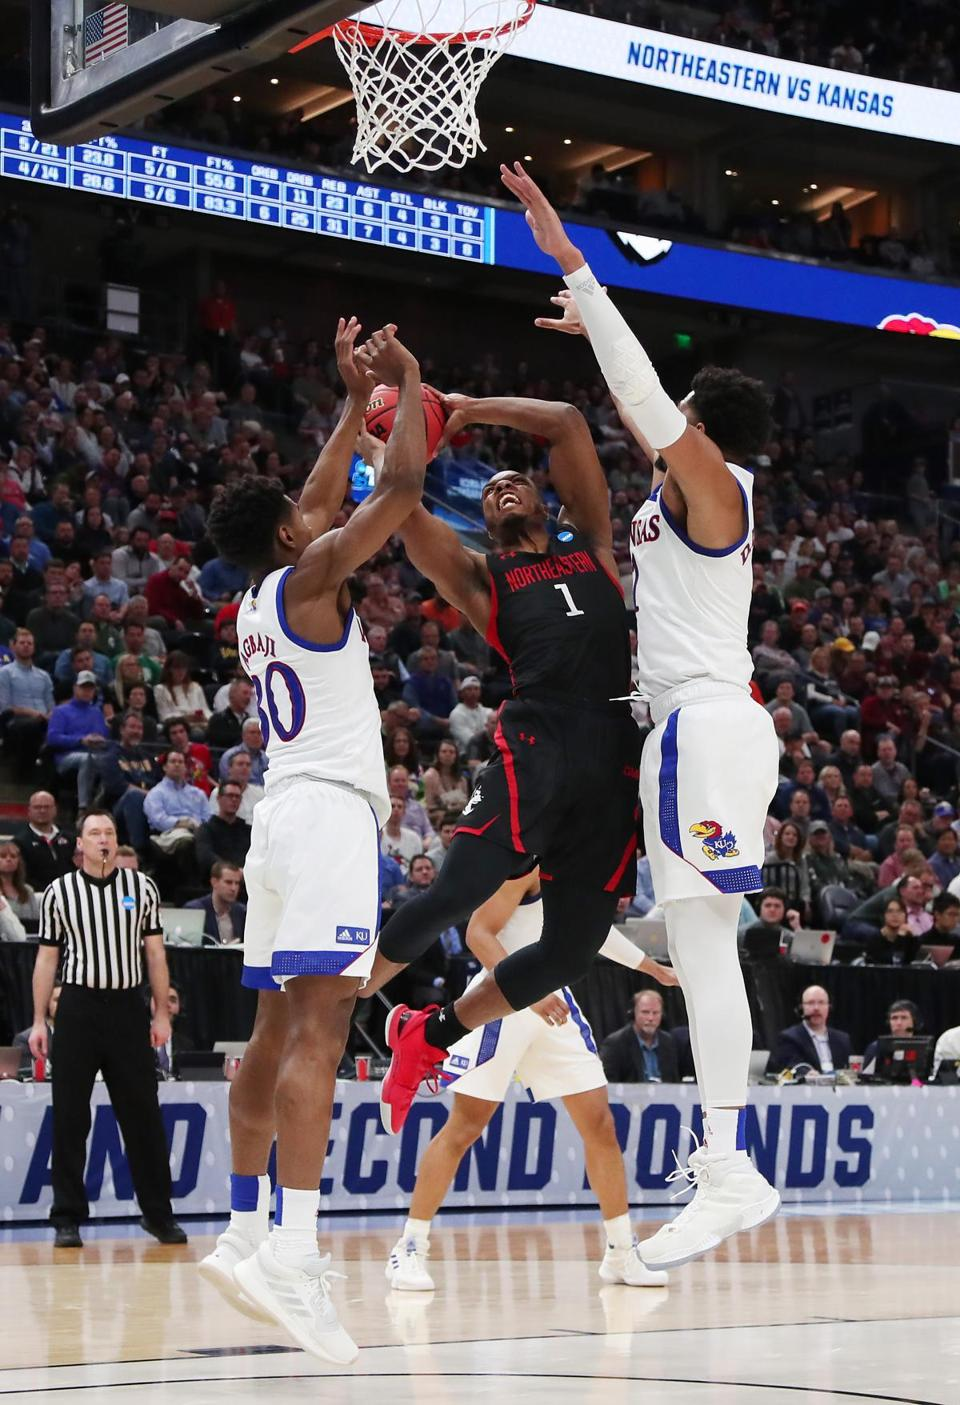 Northeastern's Shawn Occeus could find little room against the Kansas defense.